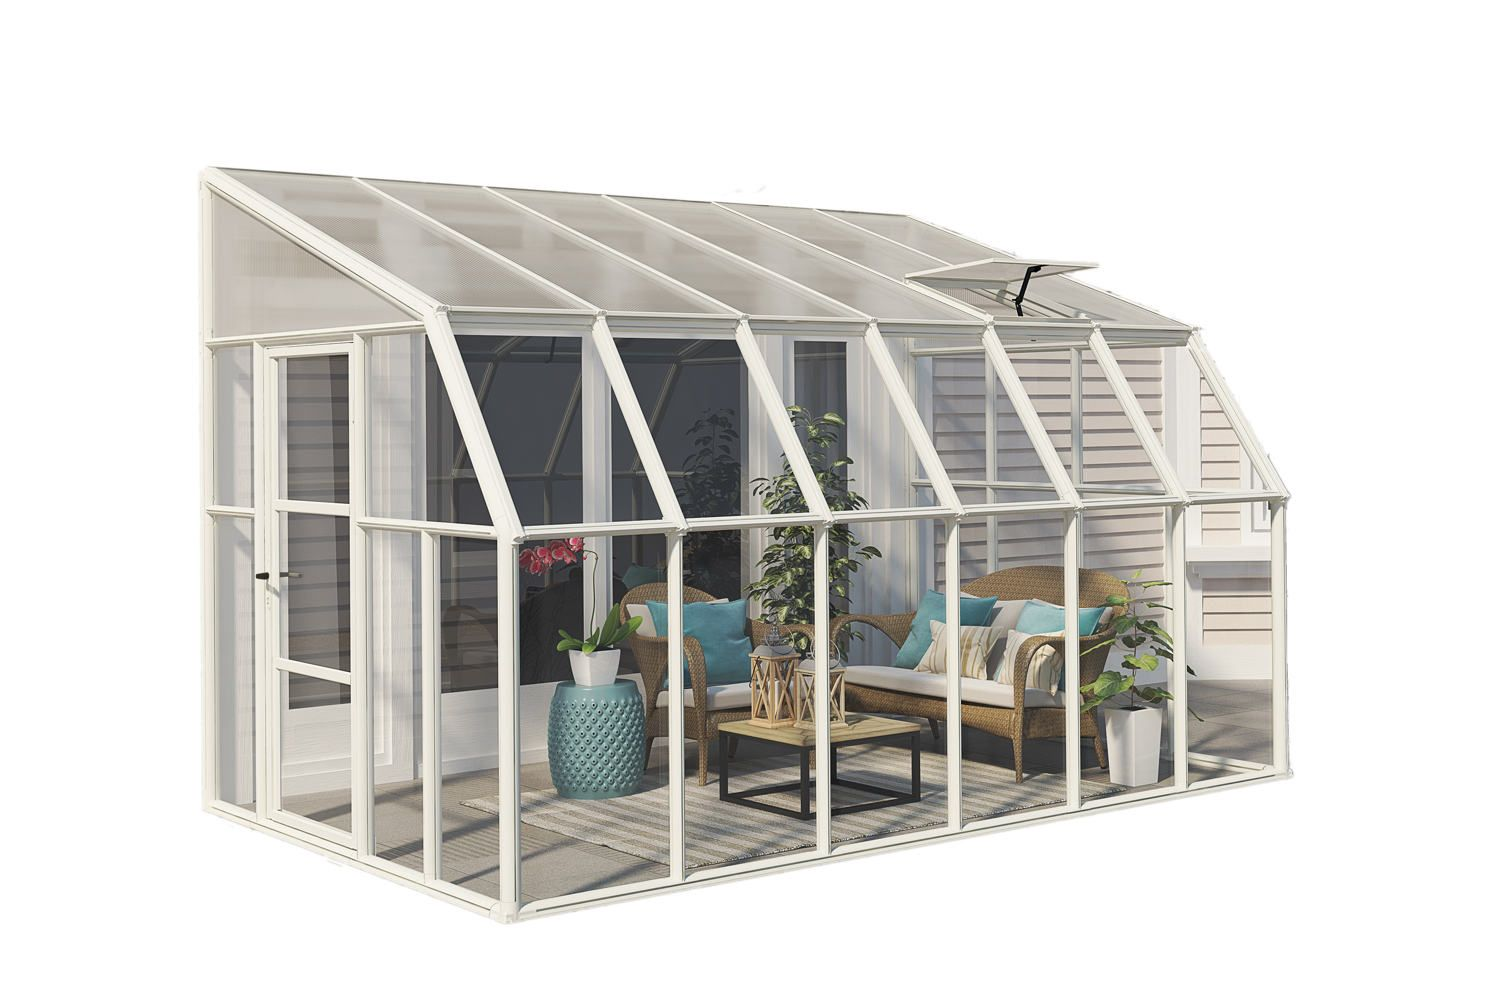 Rion Sun Room 8x12 Lean to Greenhouse Polycarbonate